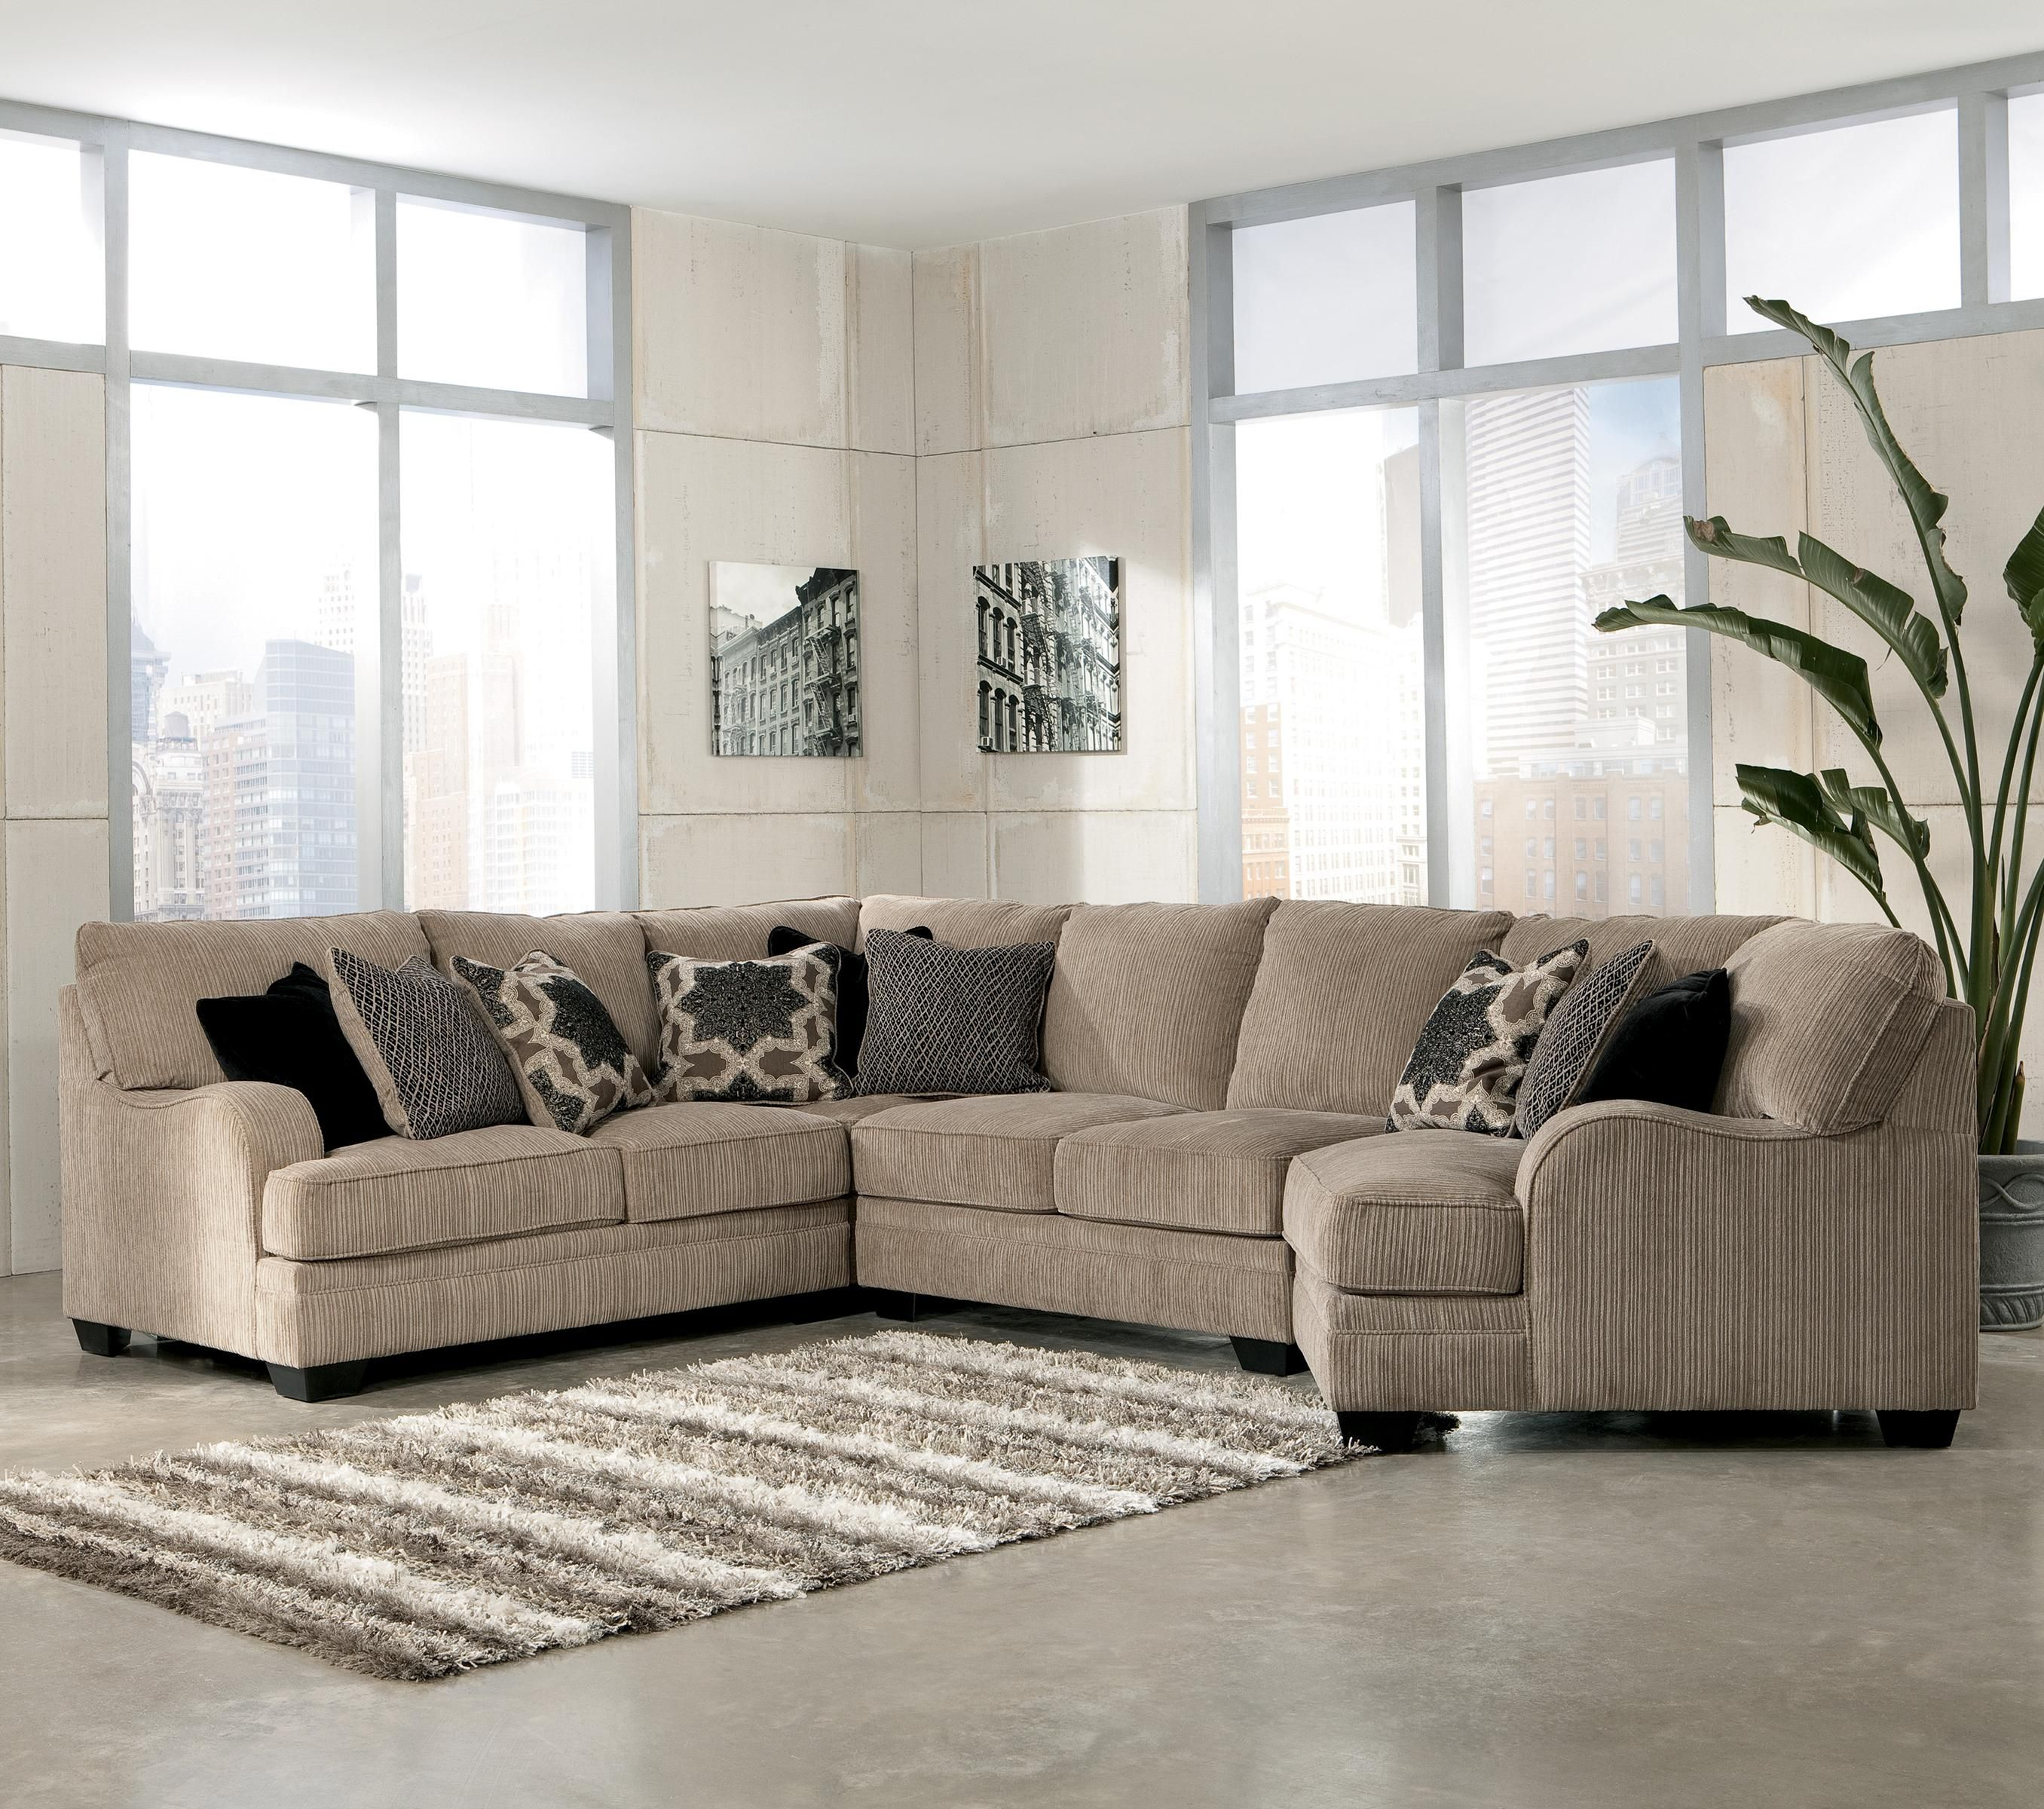 Best Katisha Platinum 4 Piece Sectional Sofa With Right 640 x 480